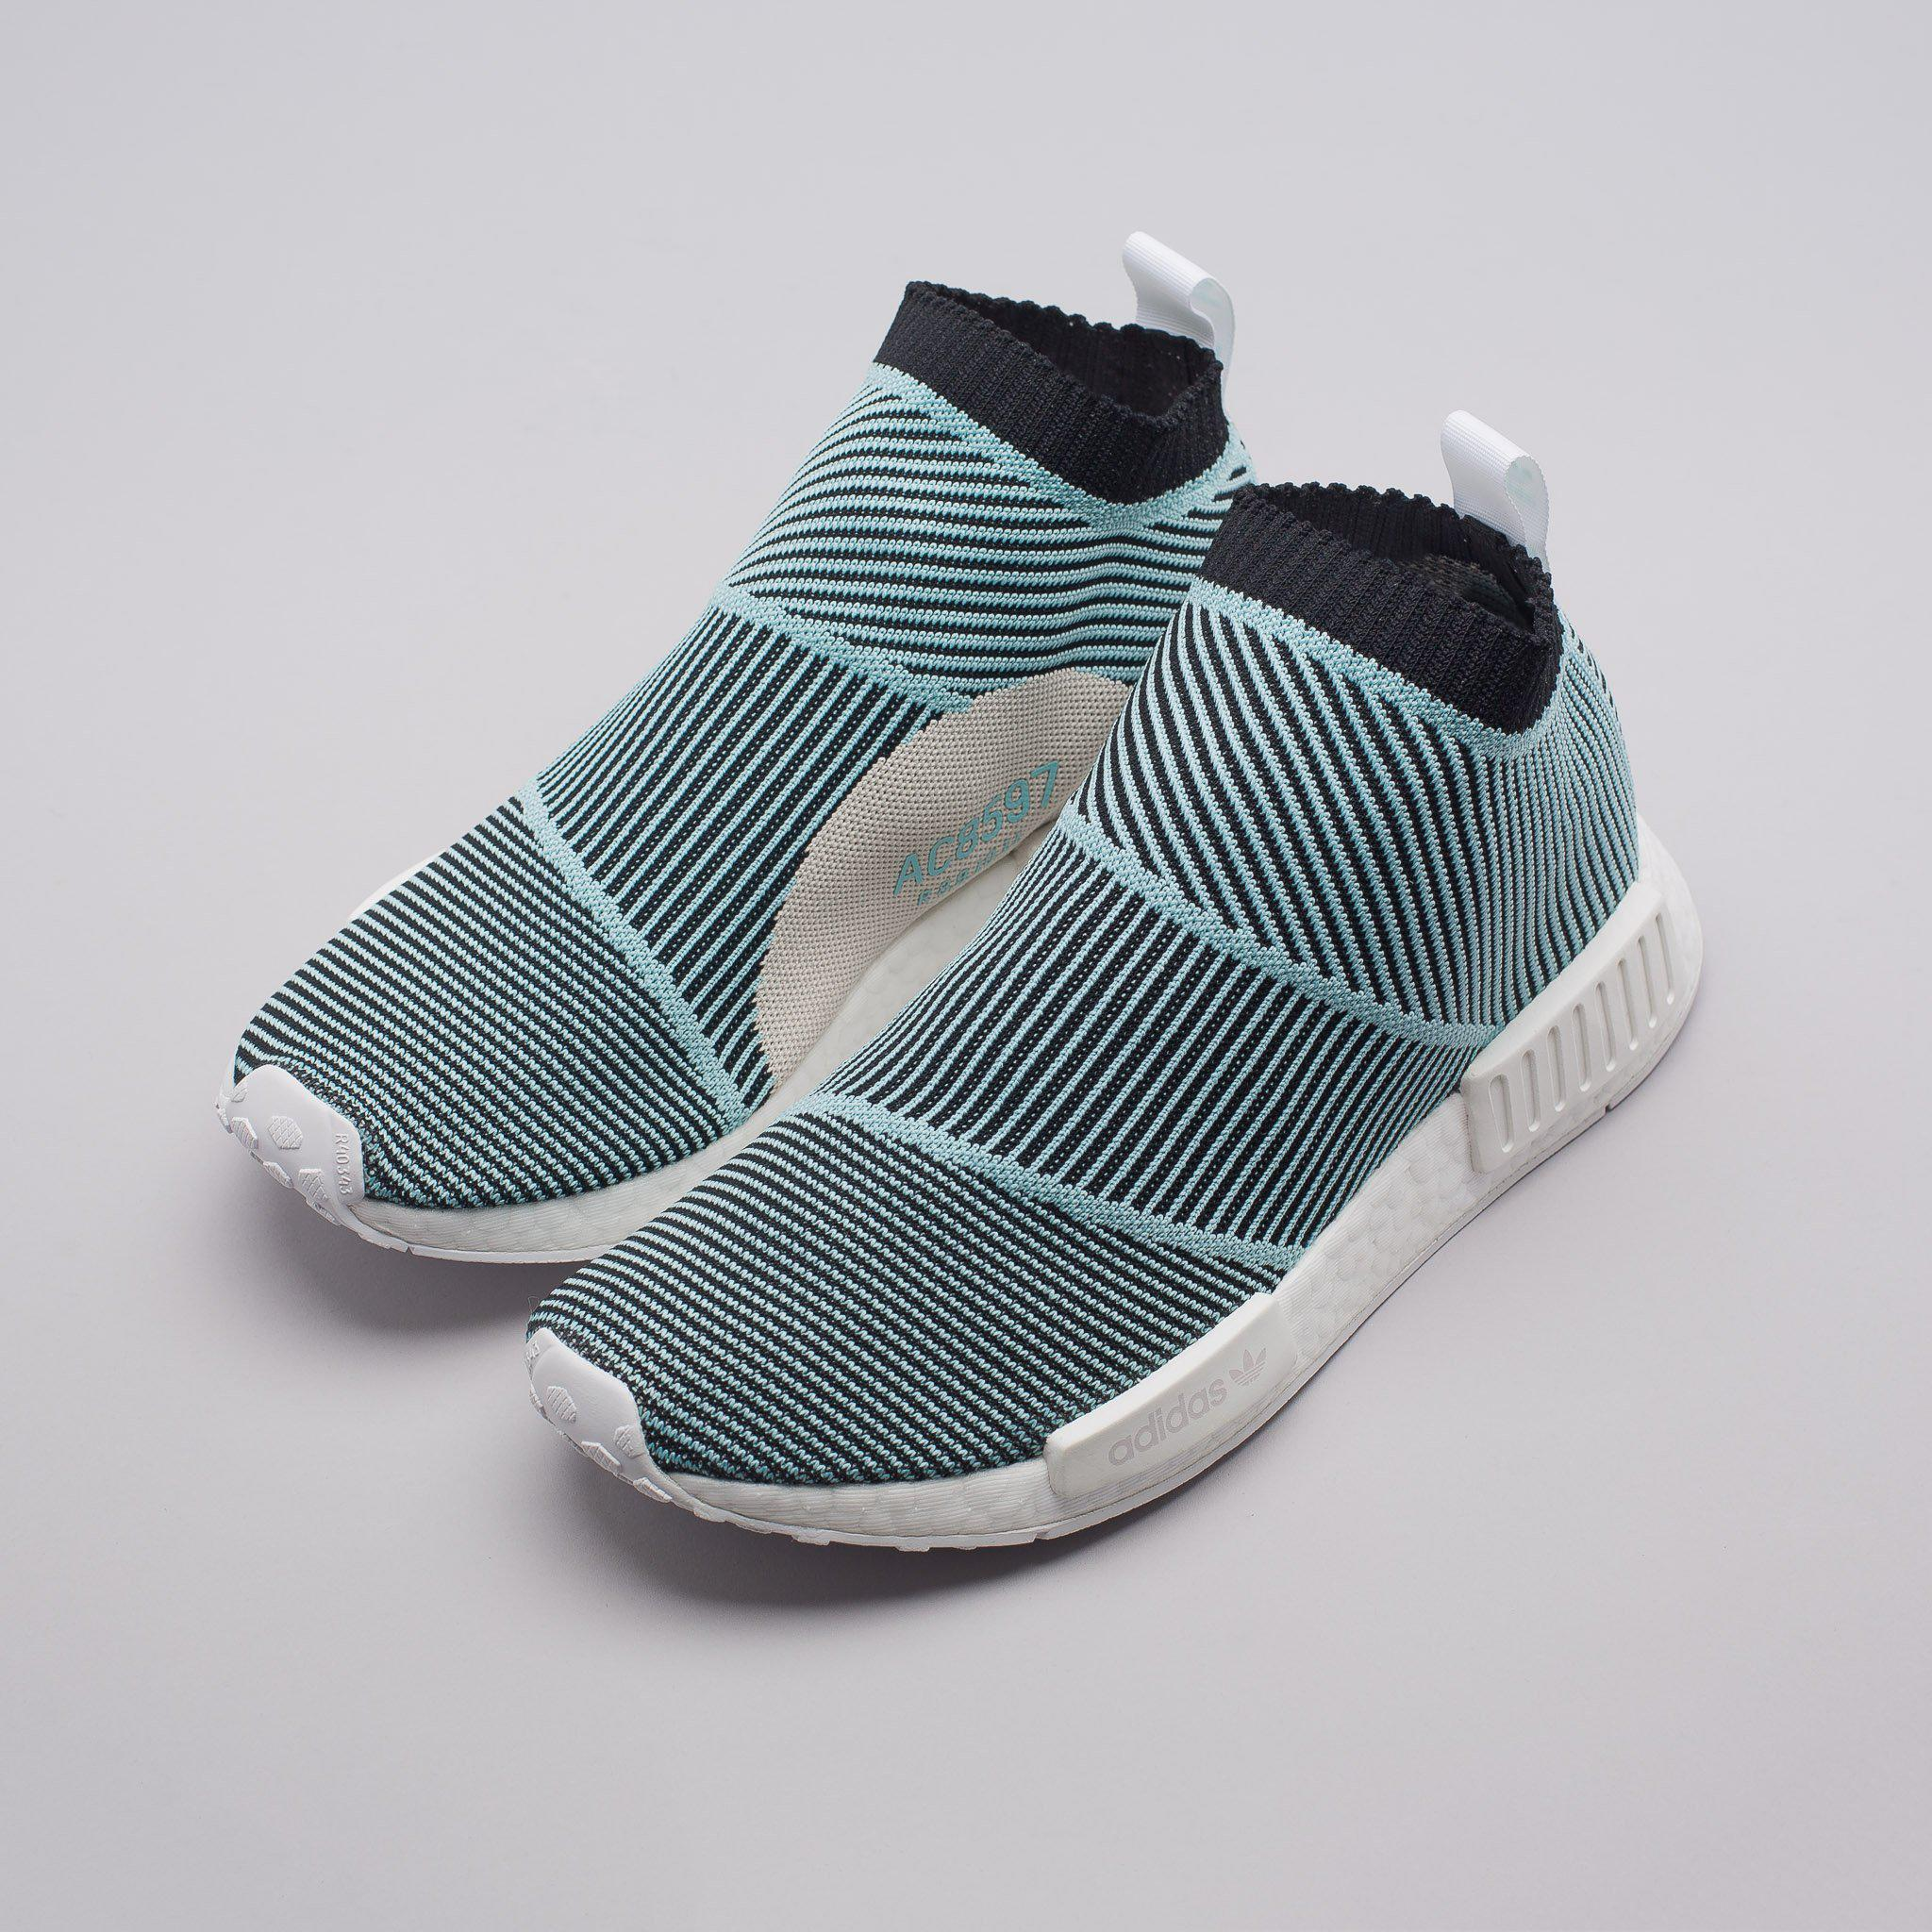 7165a87ab Lyst - adidas Nmd Cs1 Parley Primeknit In Core Black blue in Blue ...